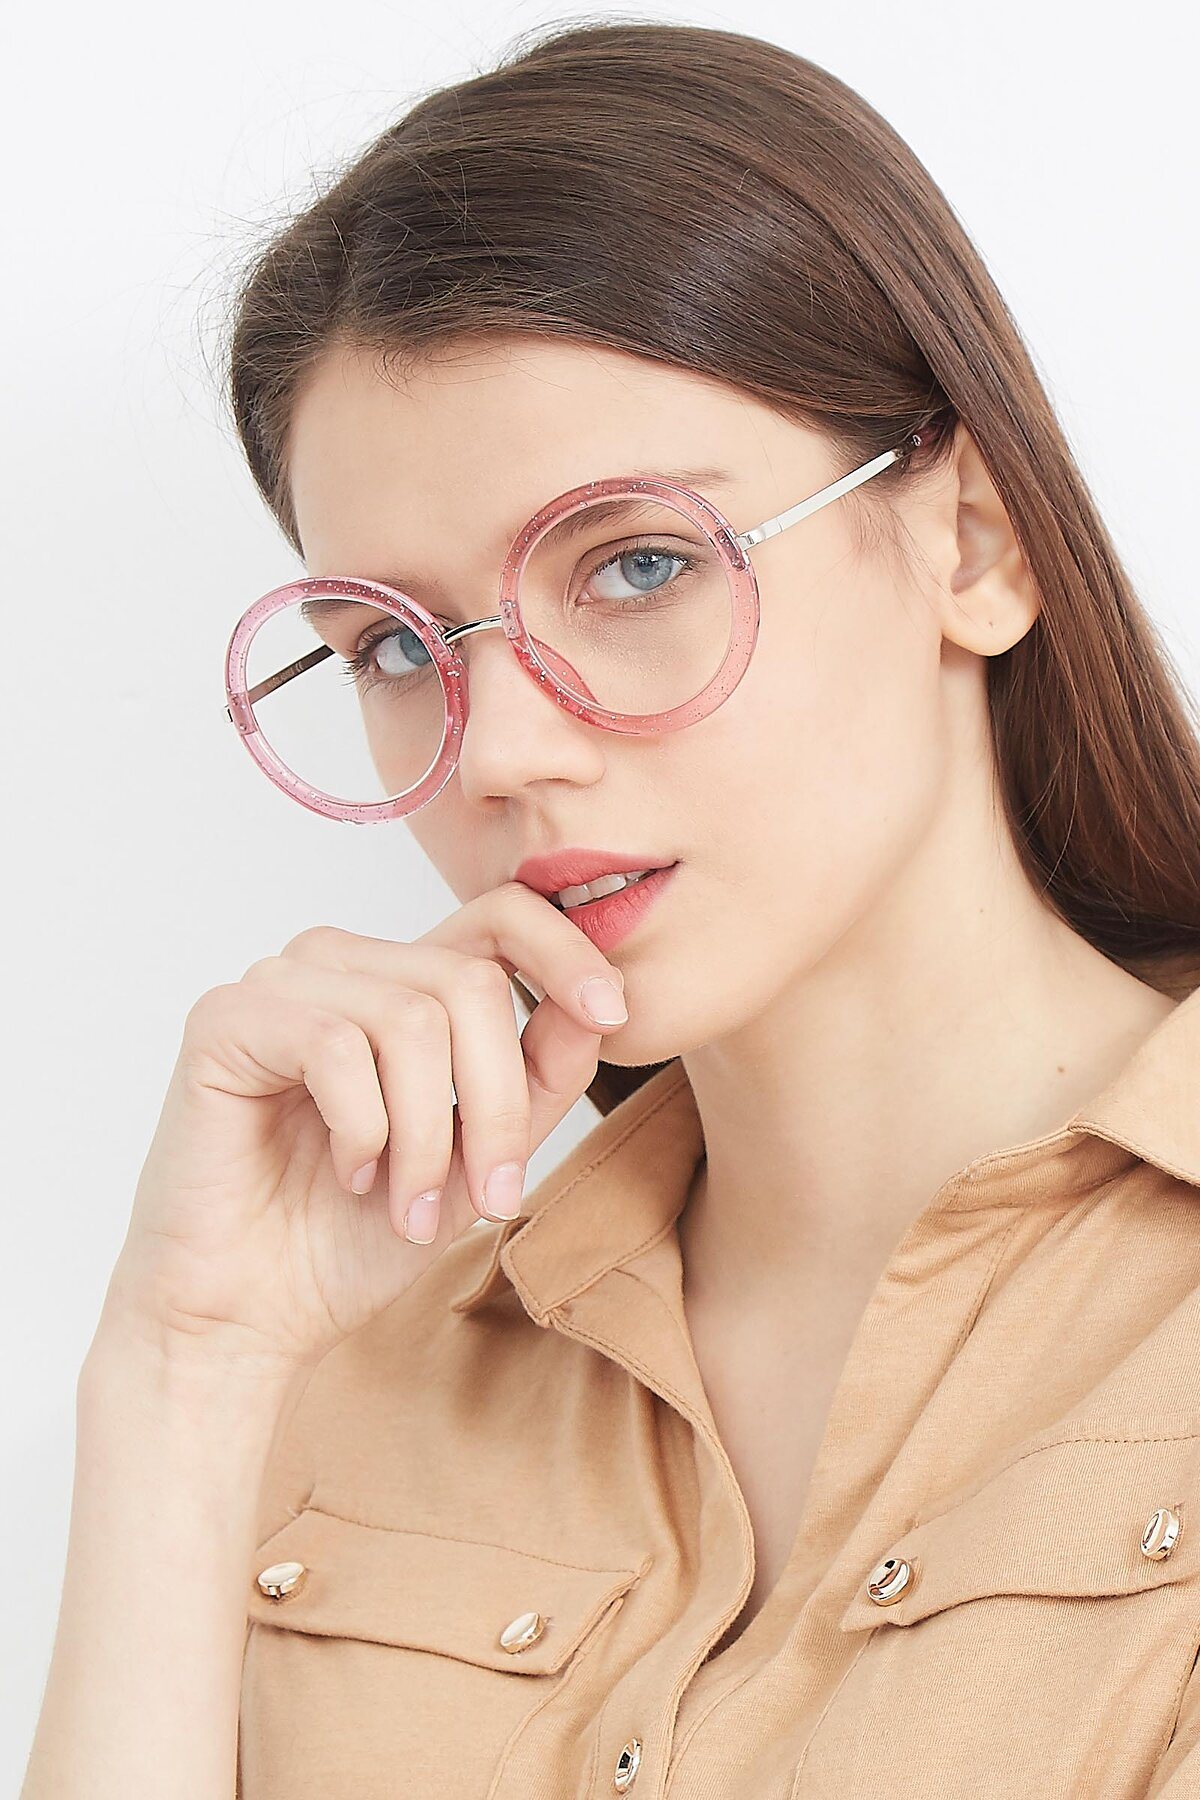 Women's lifestyle photography (portrait-2) of Bloom in Transparent Pearl Pink with Clear Eyeglass Lenses